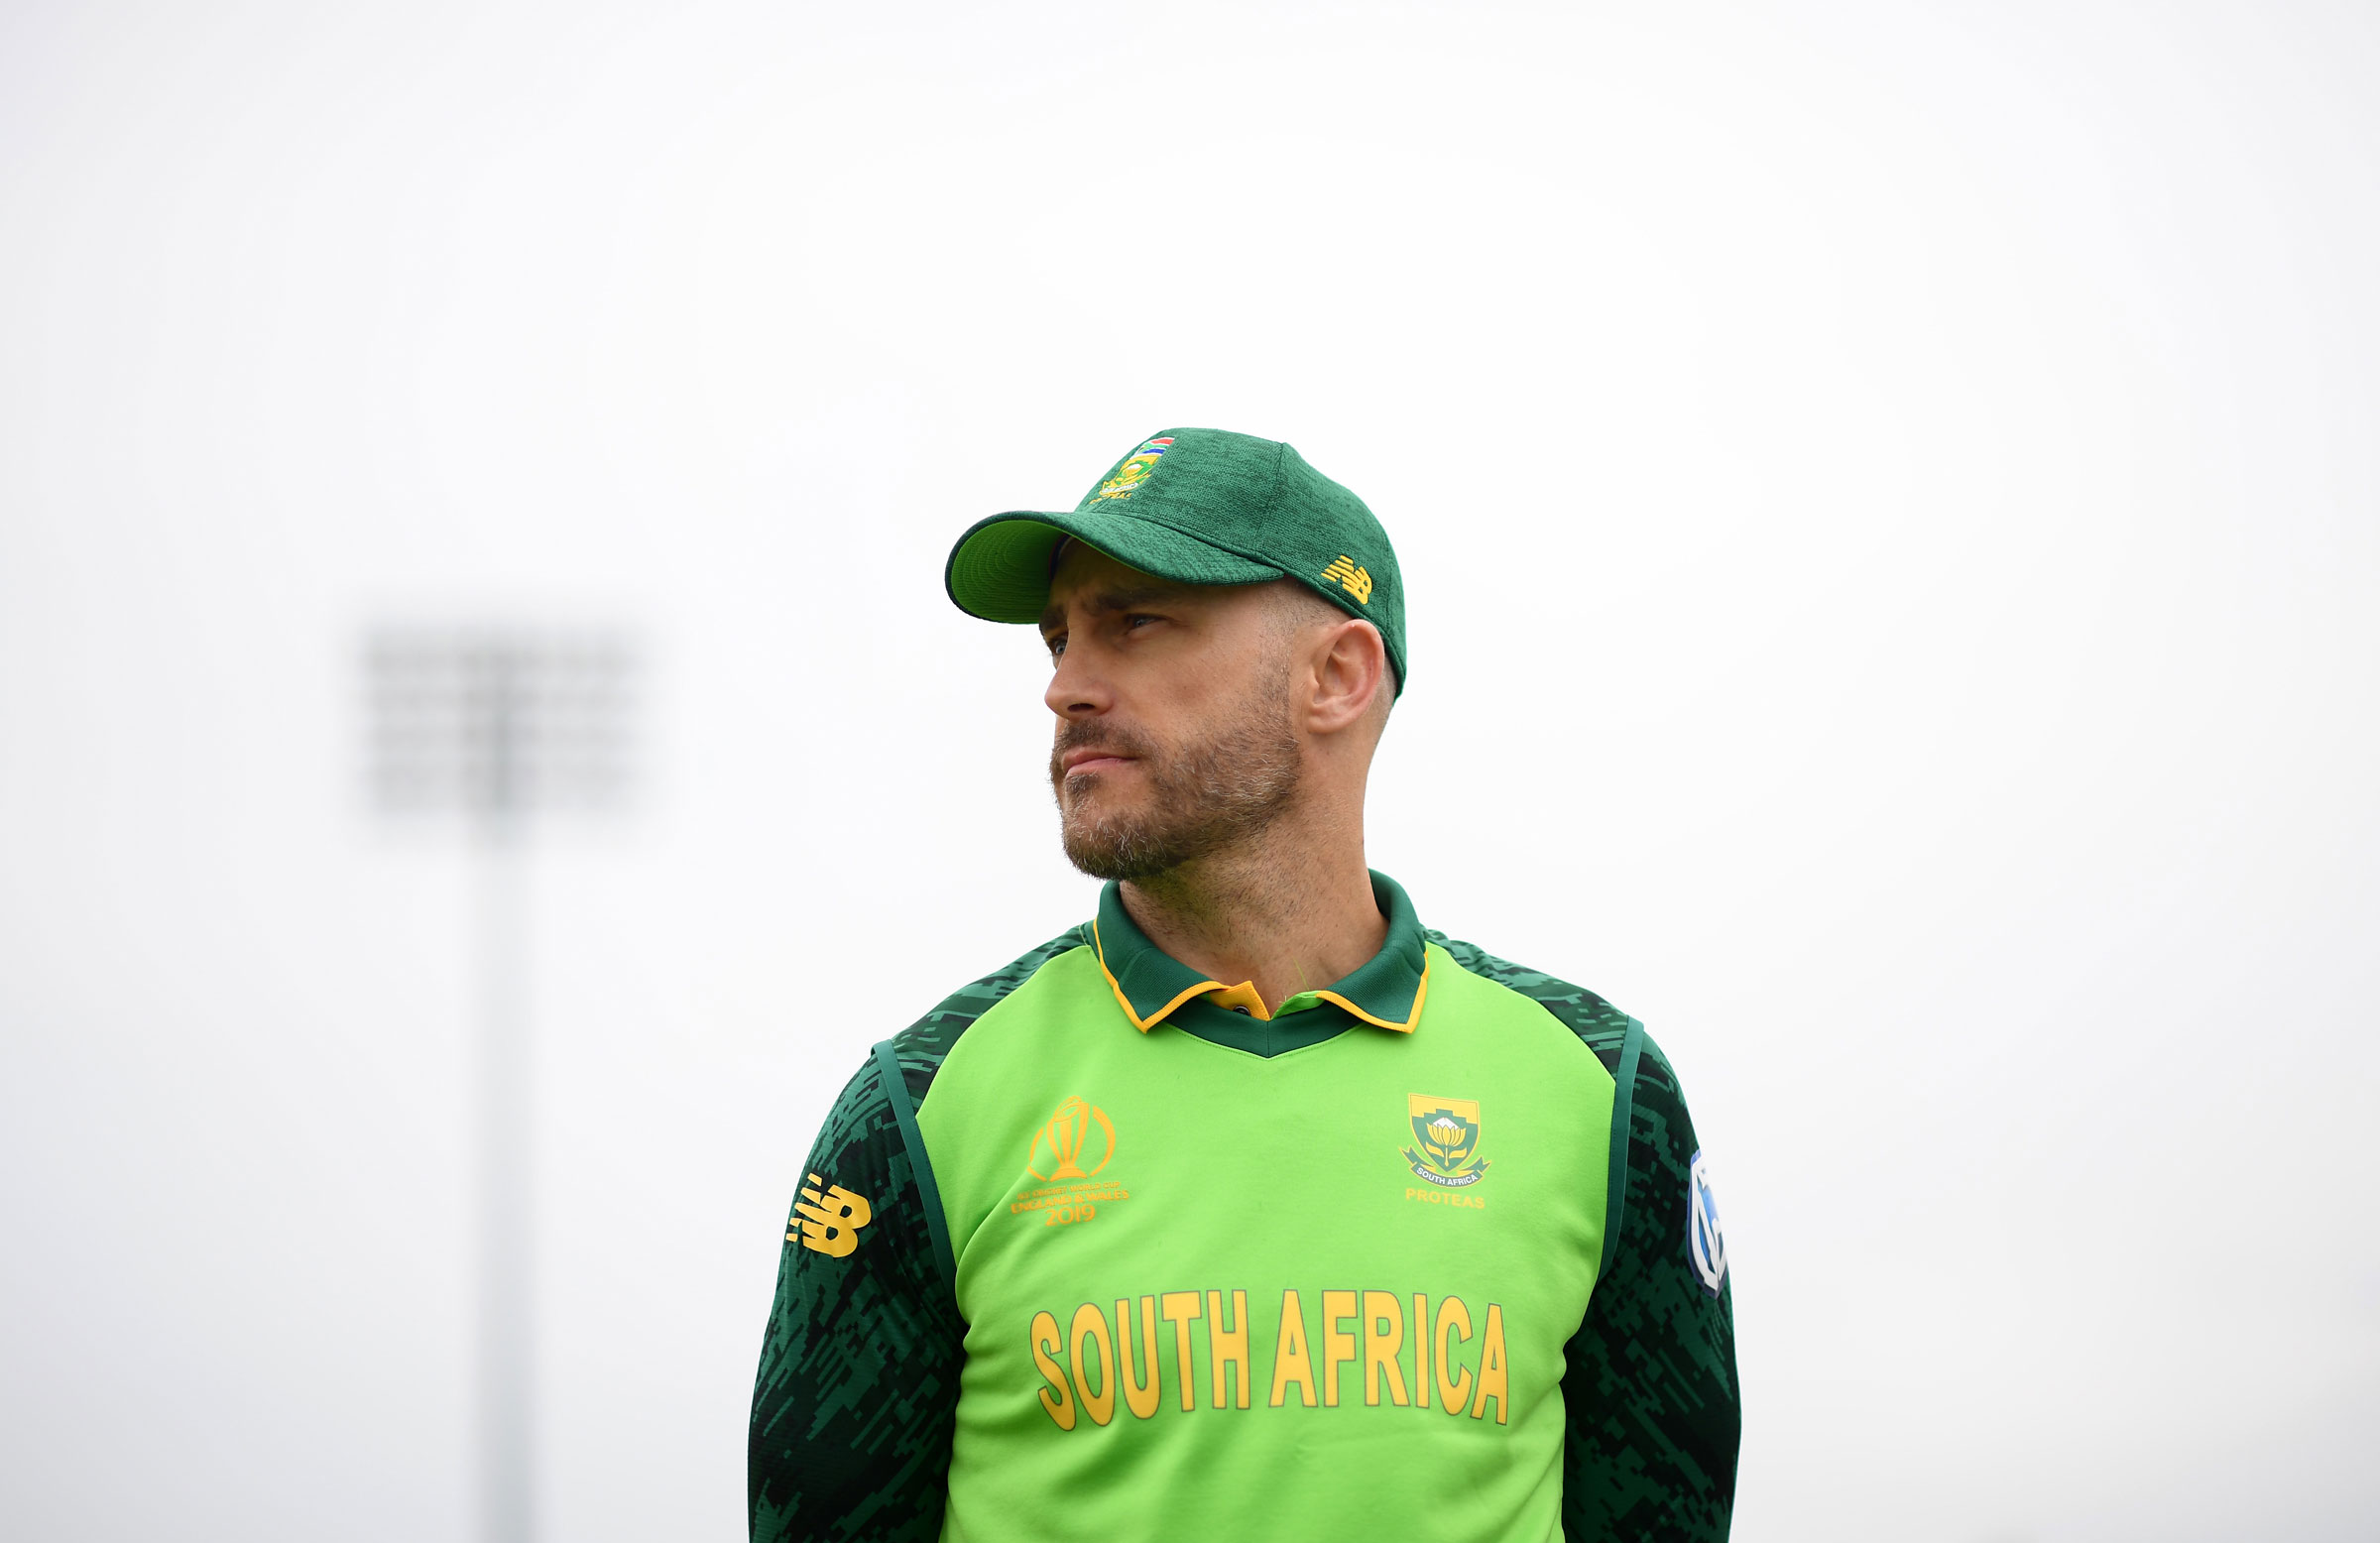 South Africa's match was abandoned on Monday // Getty